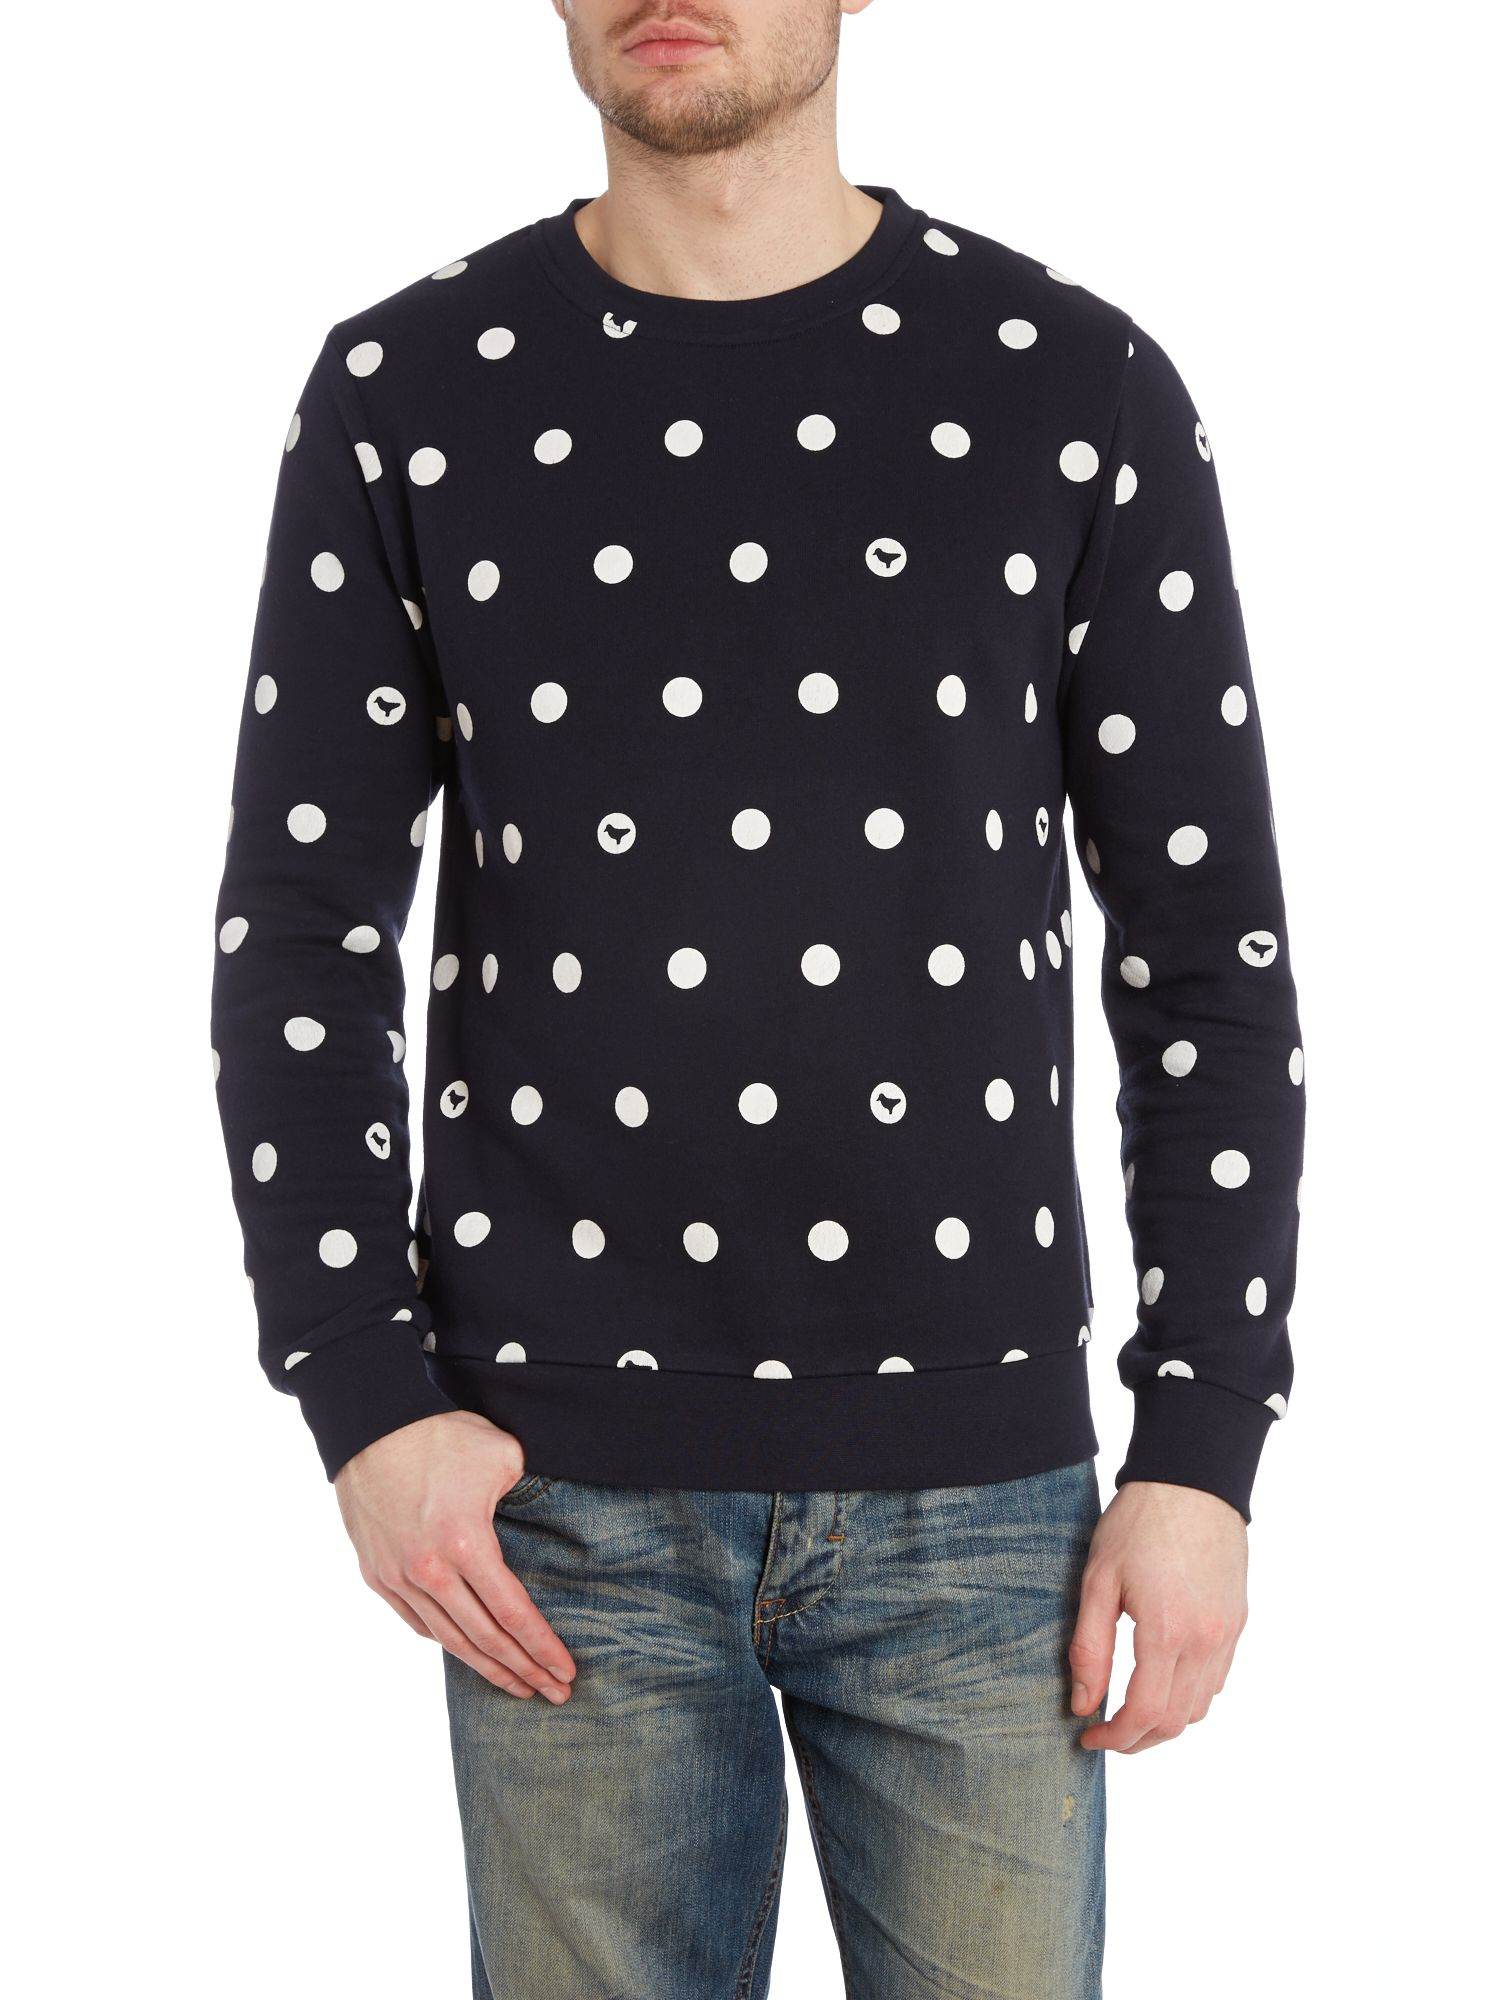 Dots printed crew neck sweatshirt